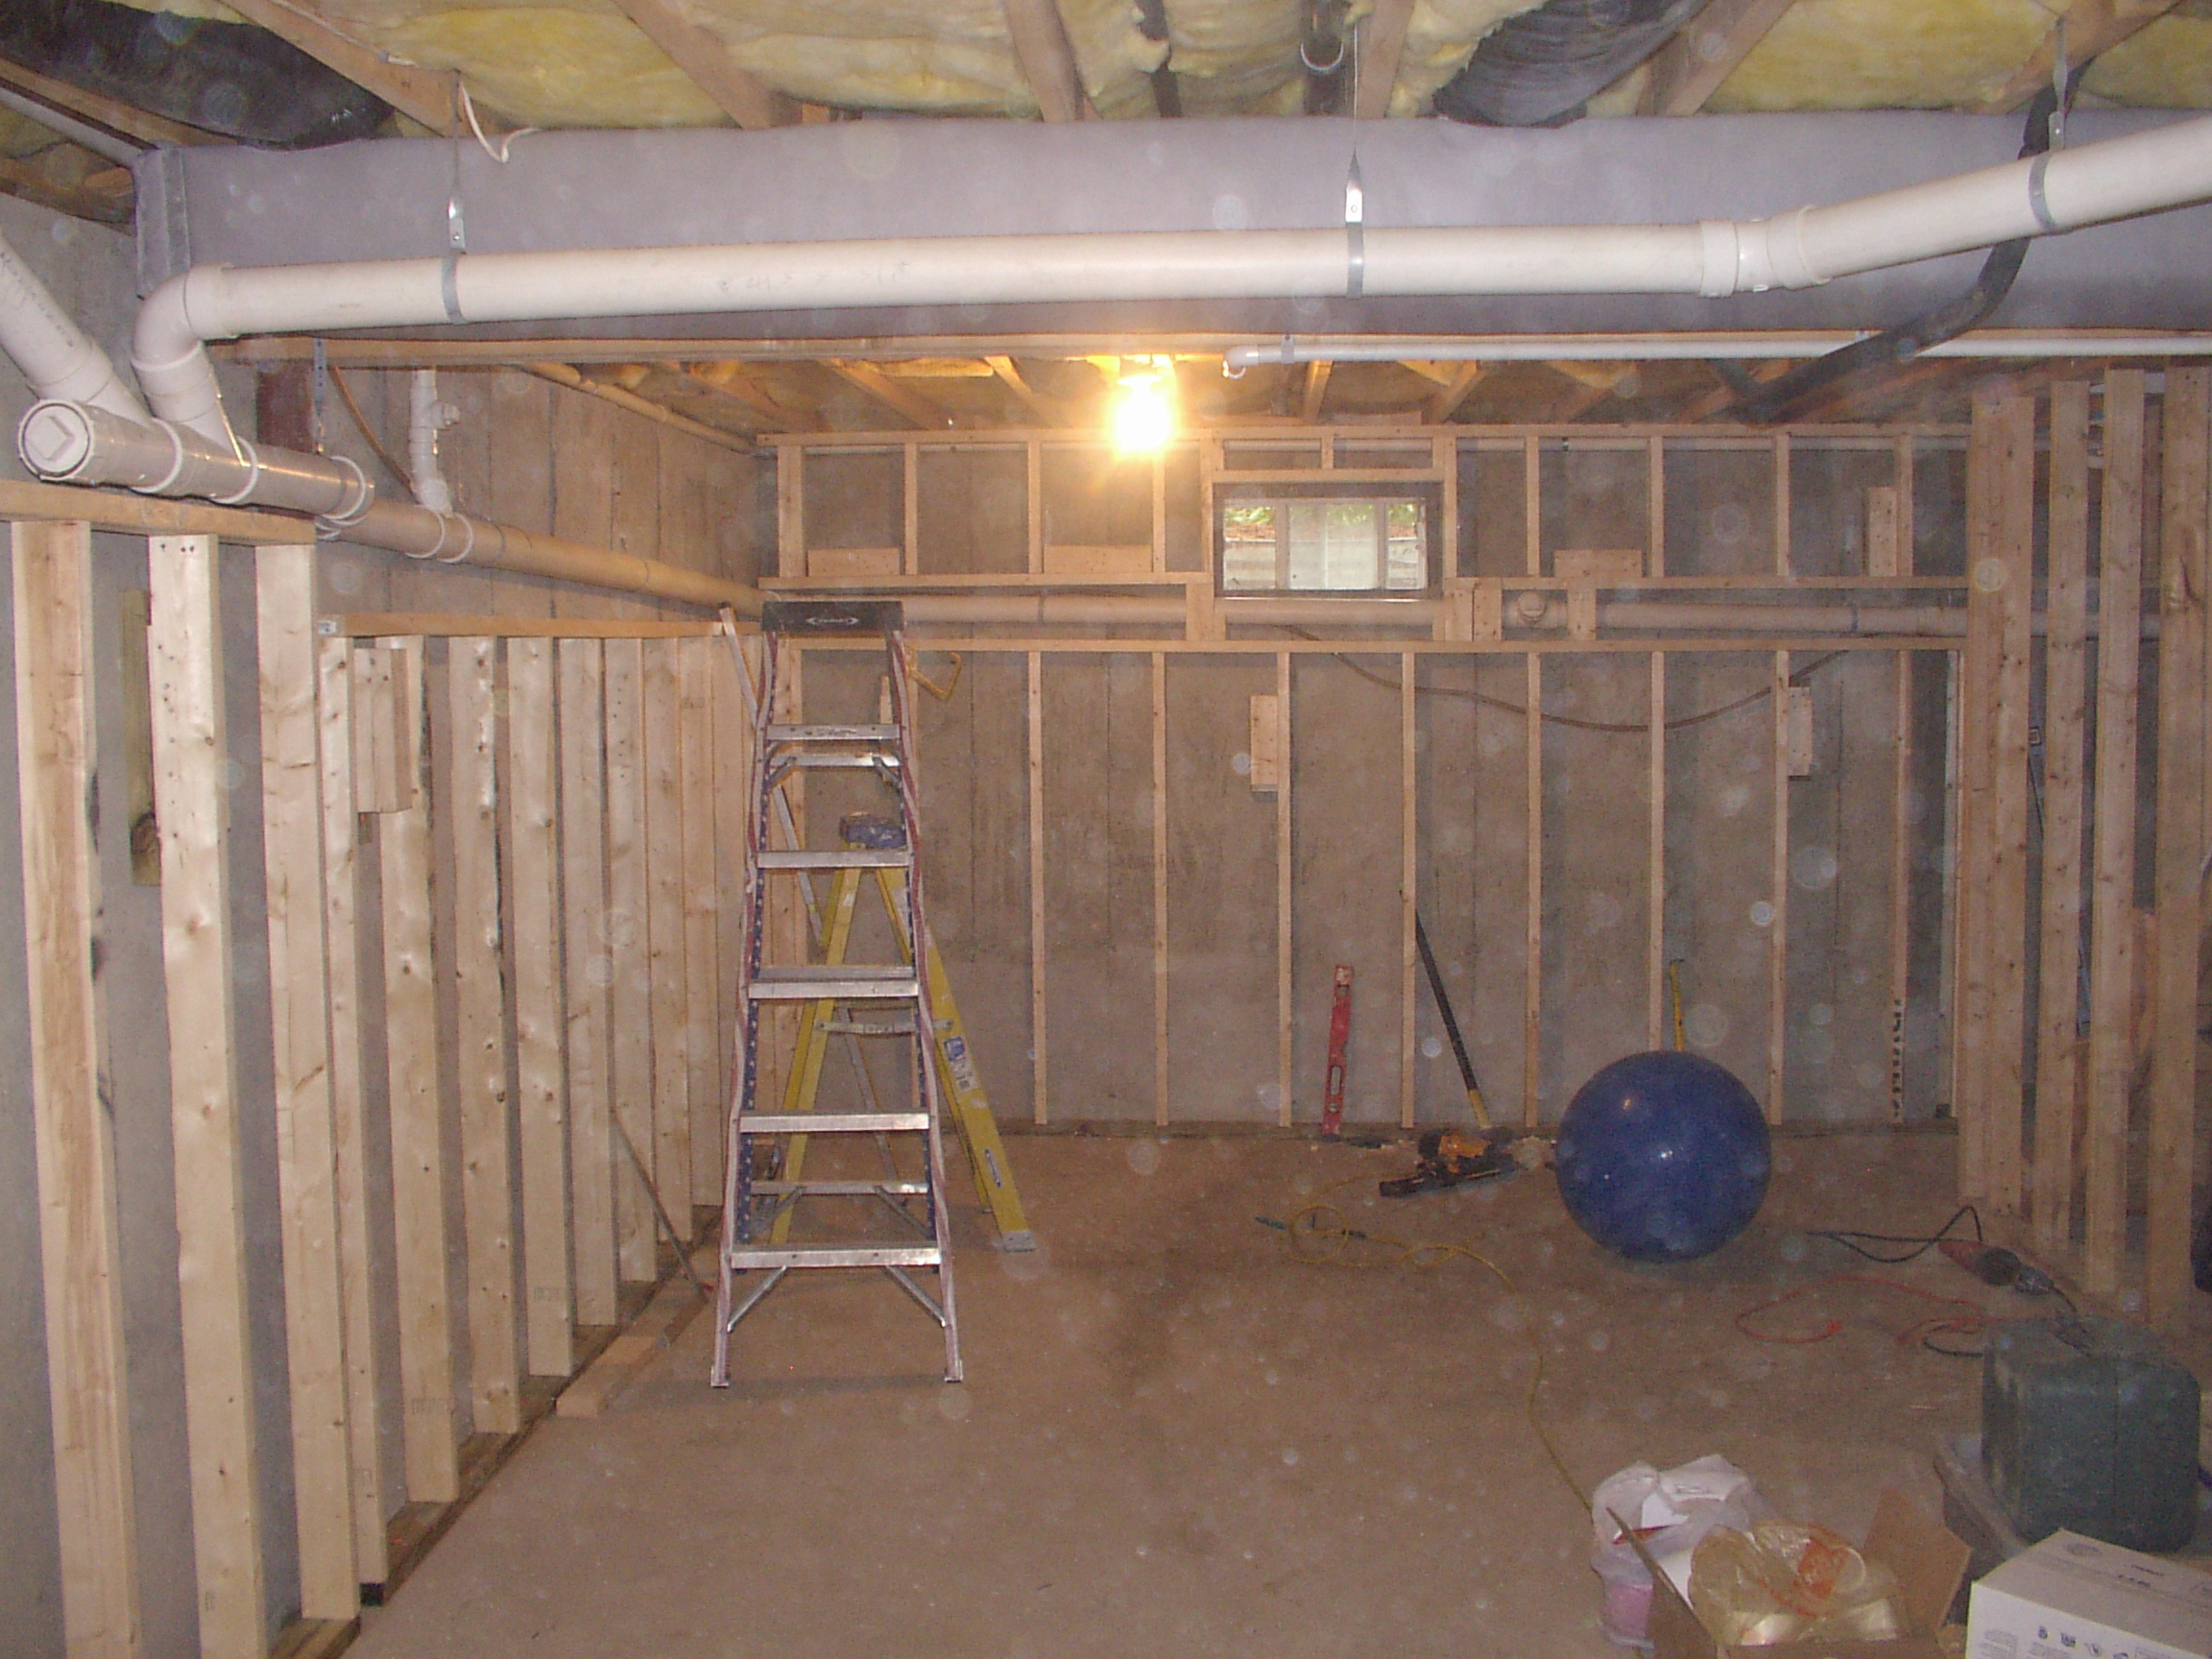 Jason du construction finish basement 2 stoughton - Finish my basement ideas ...